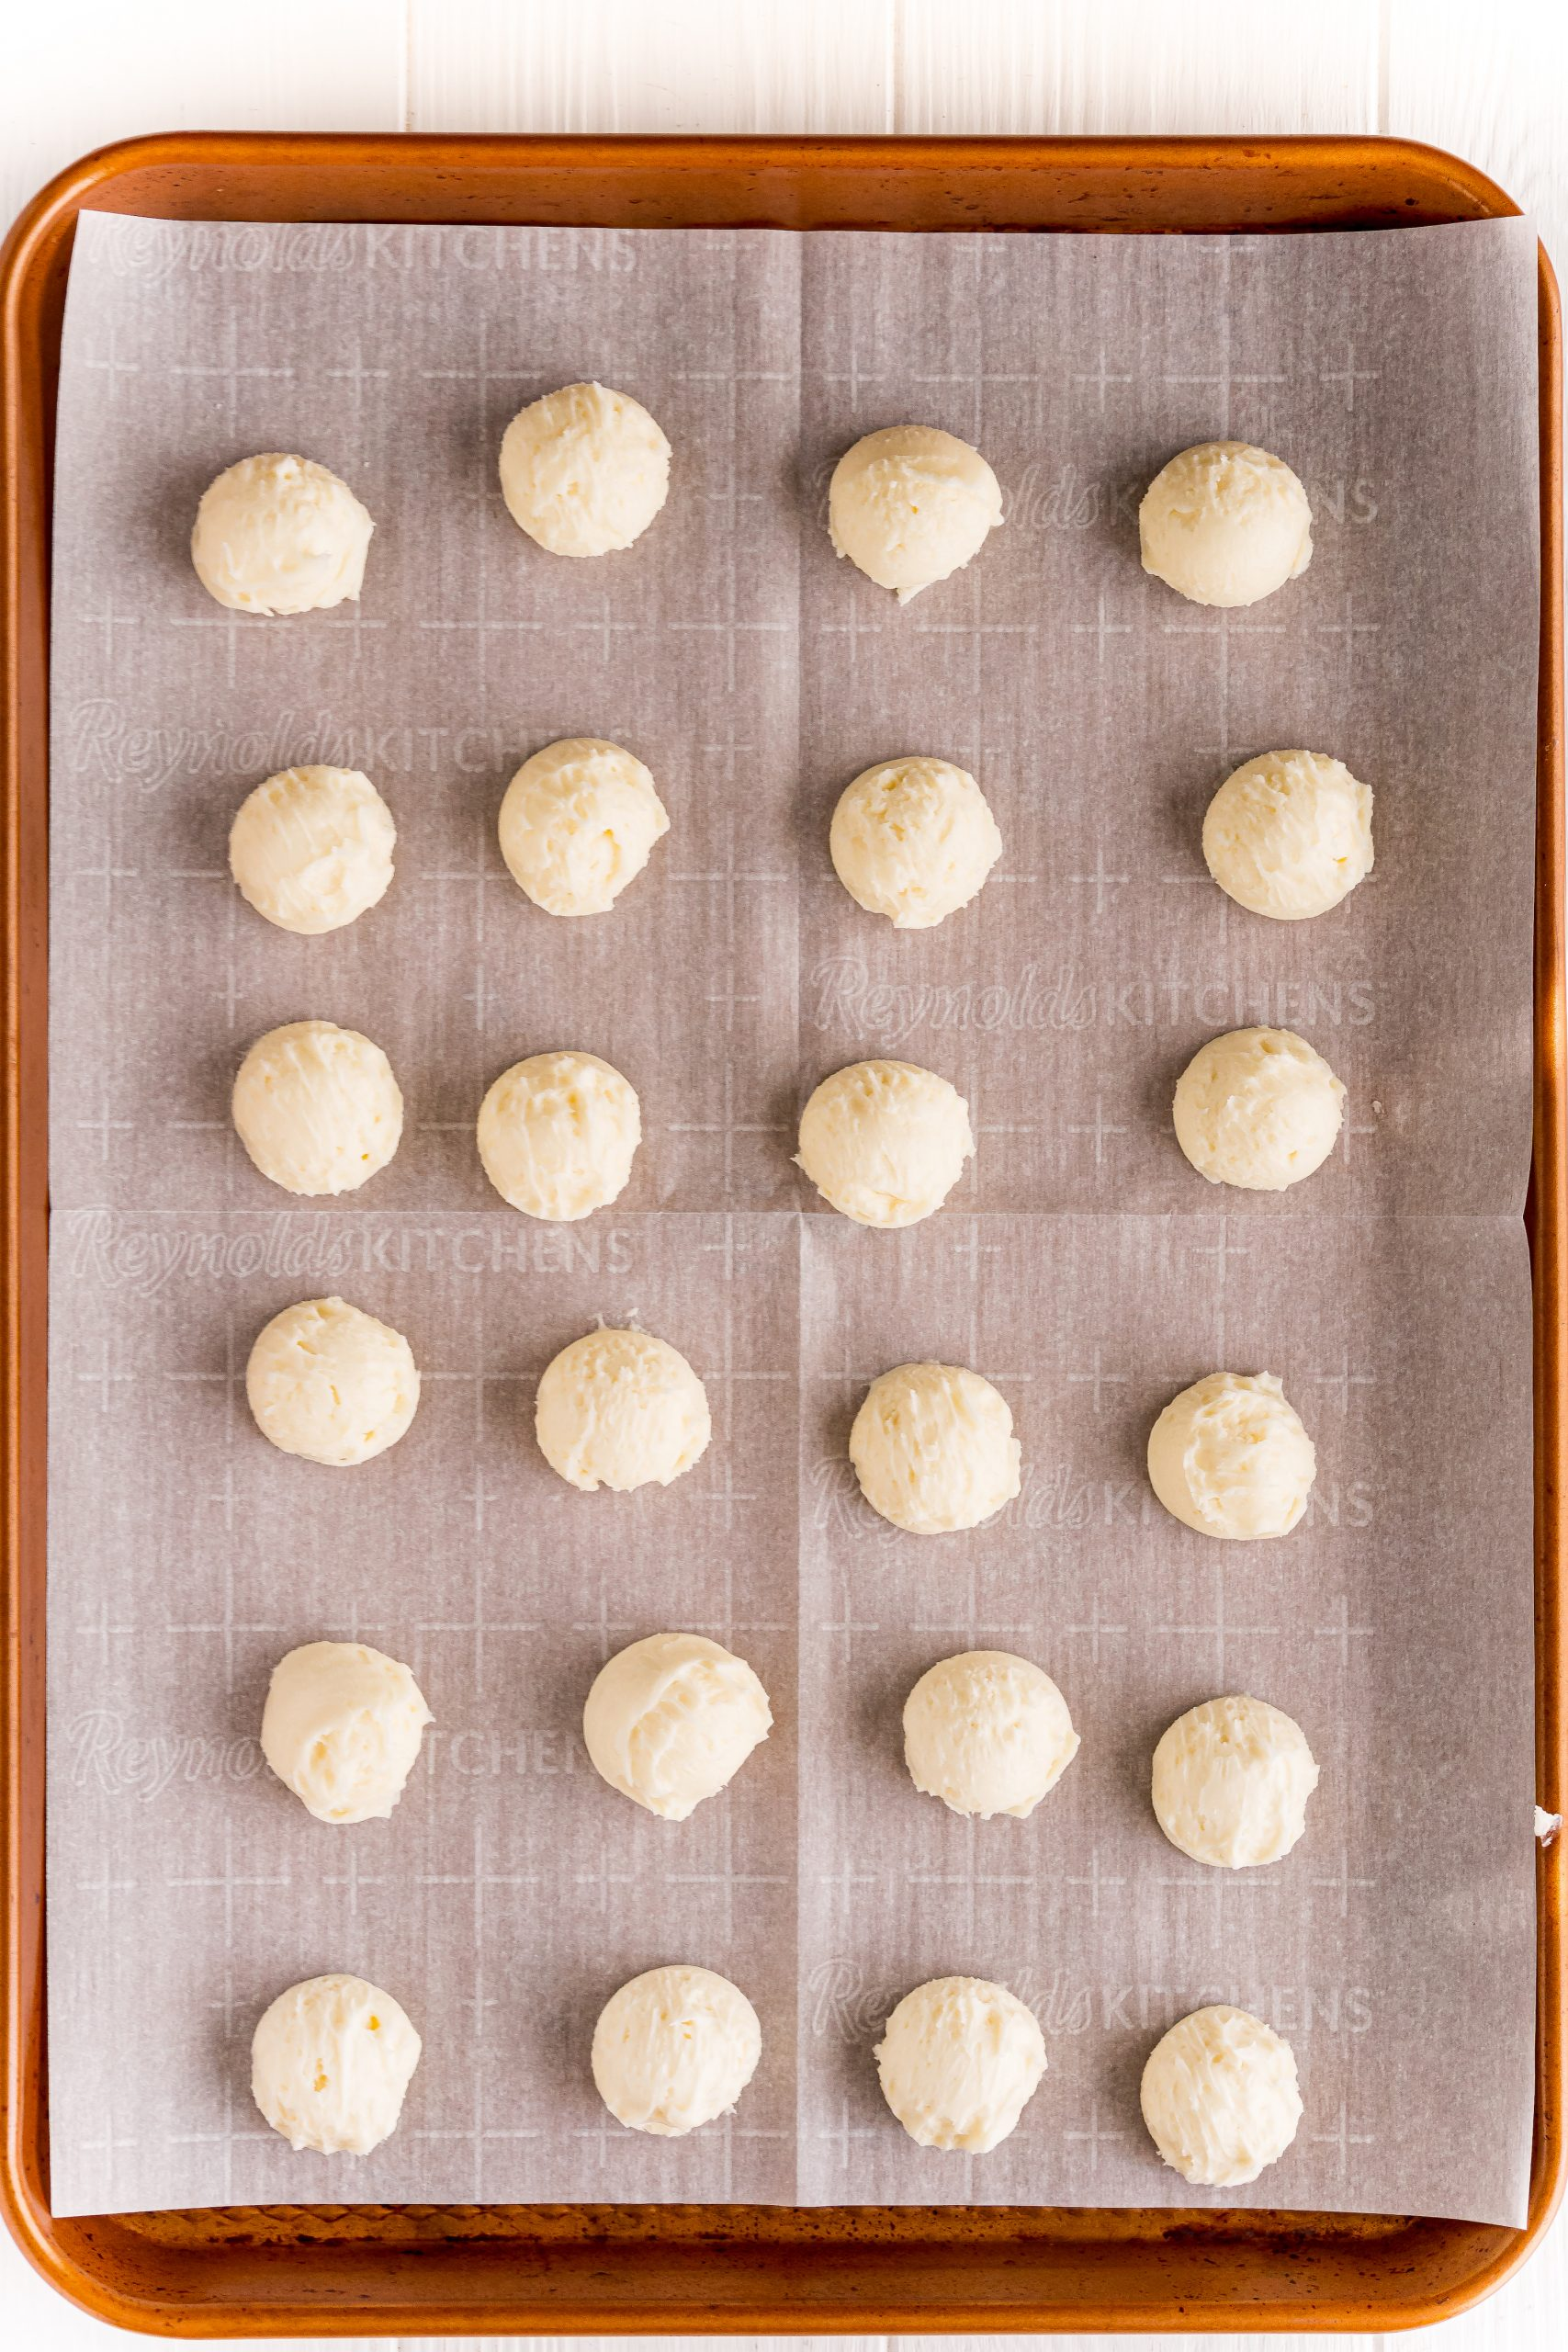 rolled out buttercream candies on a baking sheet